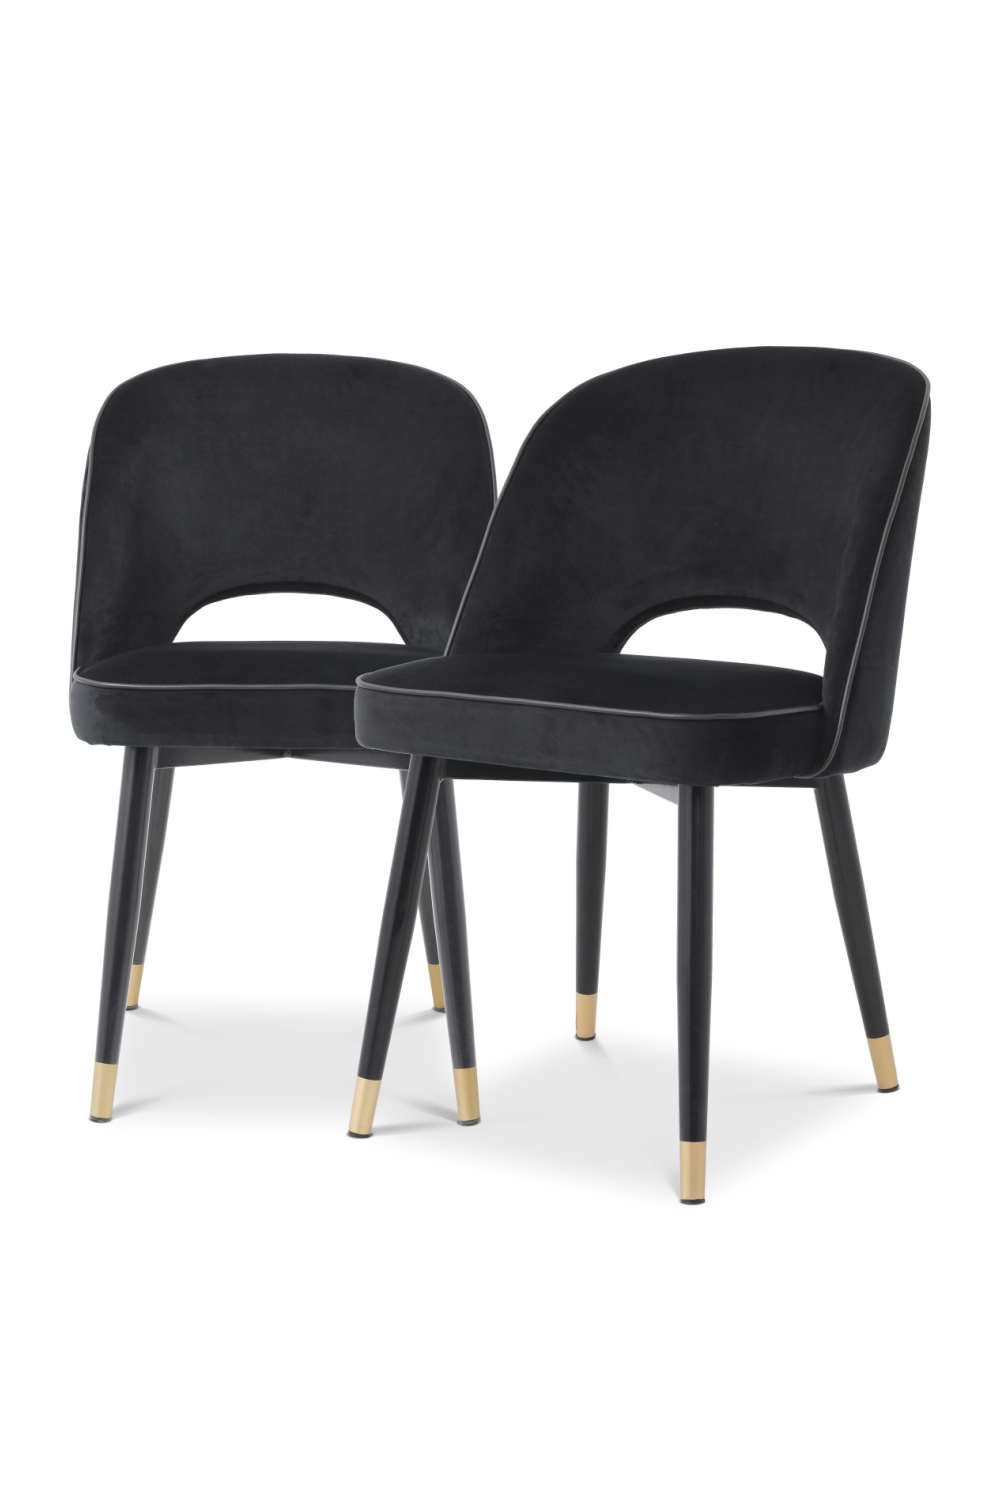 Black Velvet Dining Chair Set Of 2 | Eichholtz Cliff